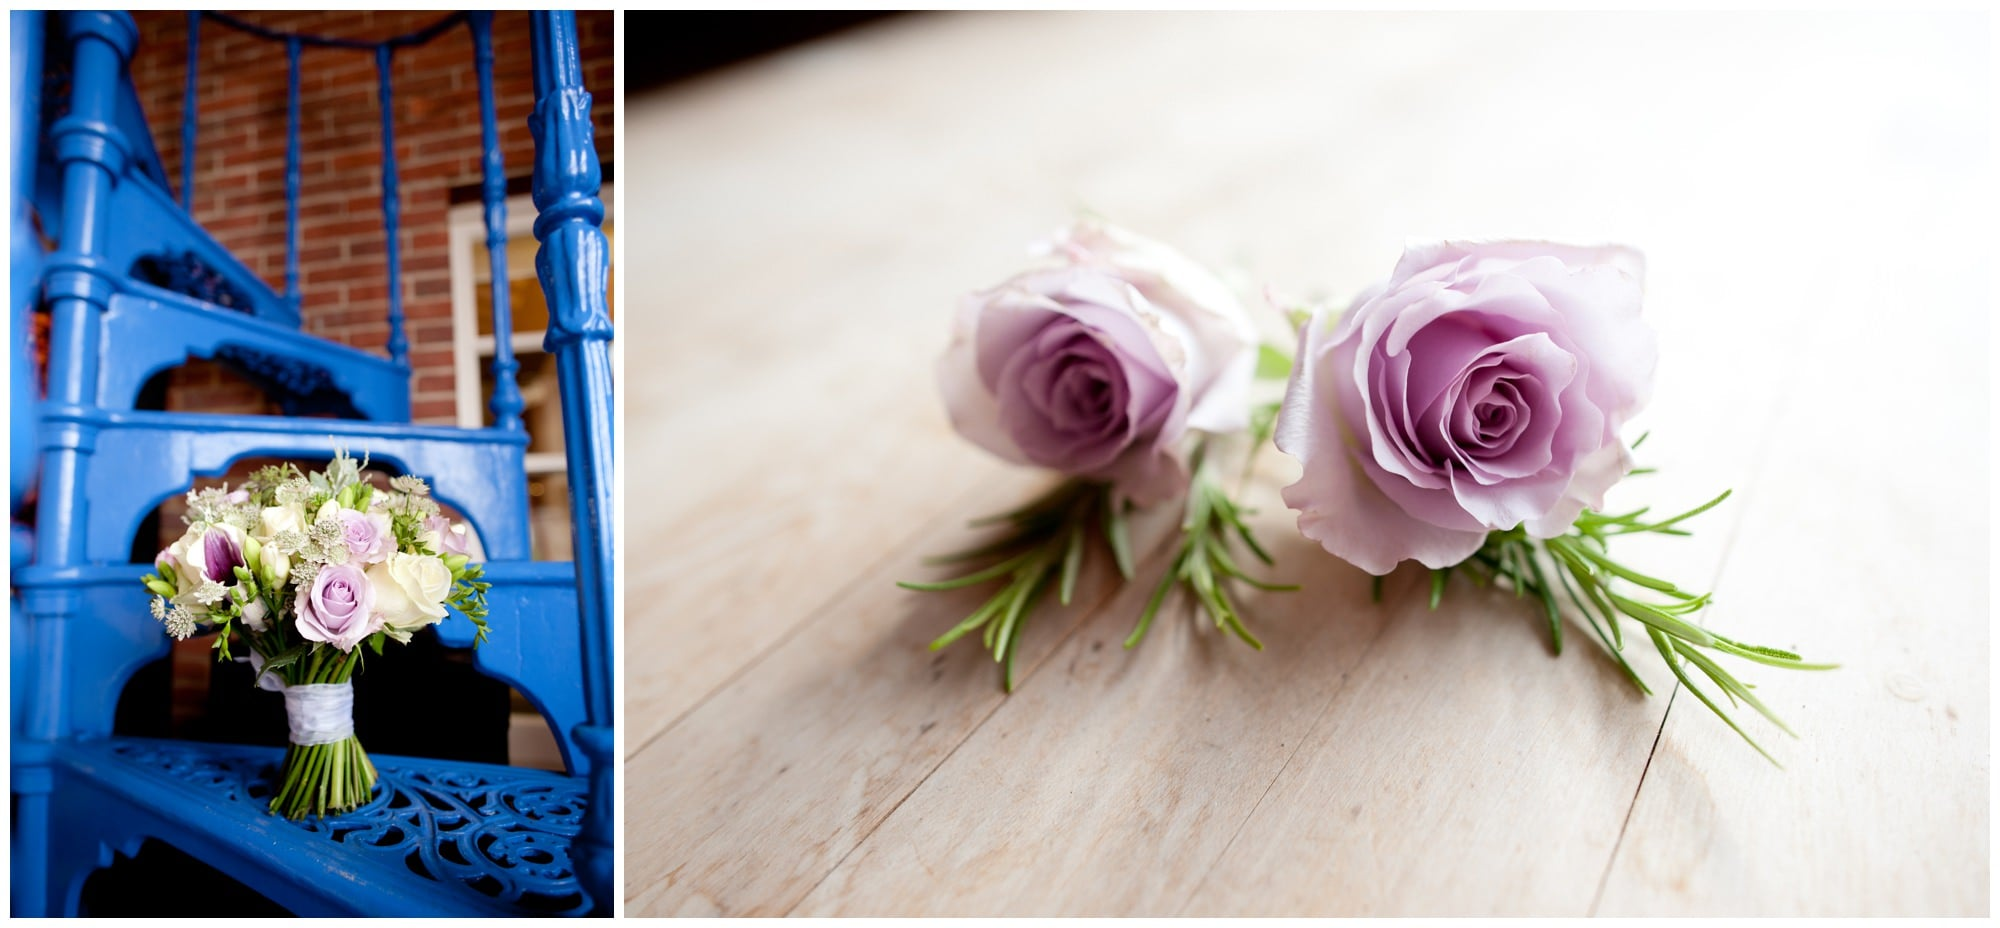 Photograph of Wedding Bouquet and Buttonholes